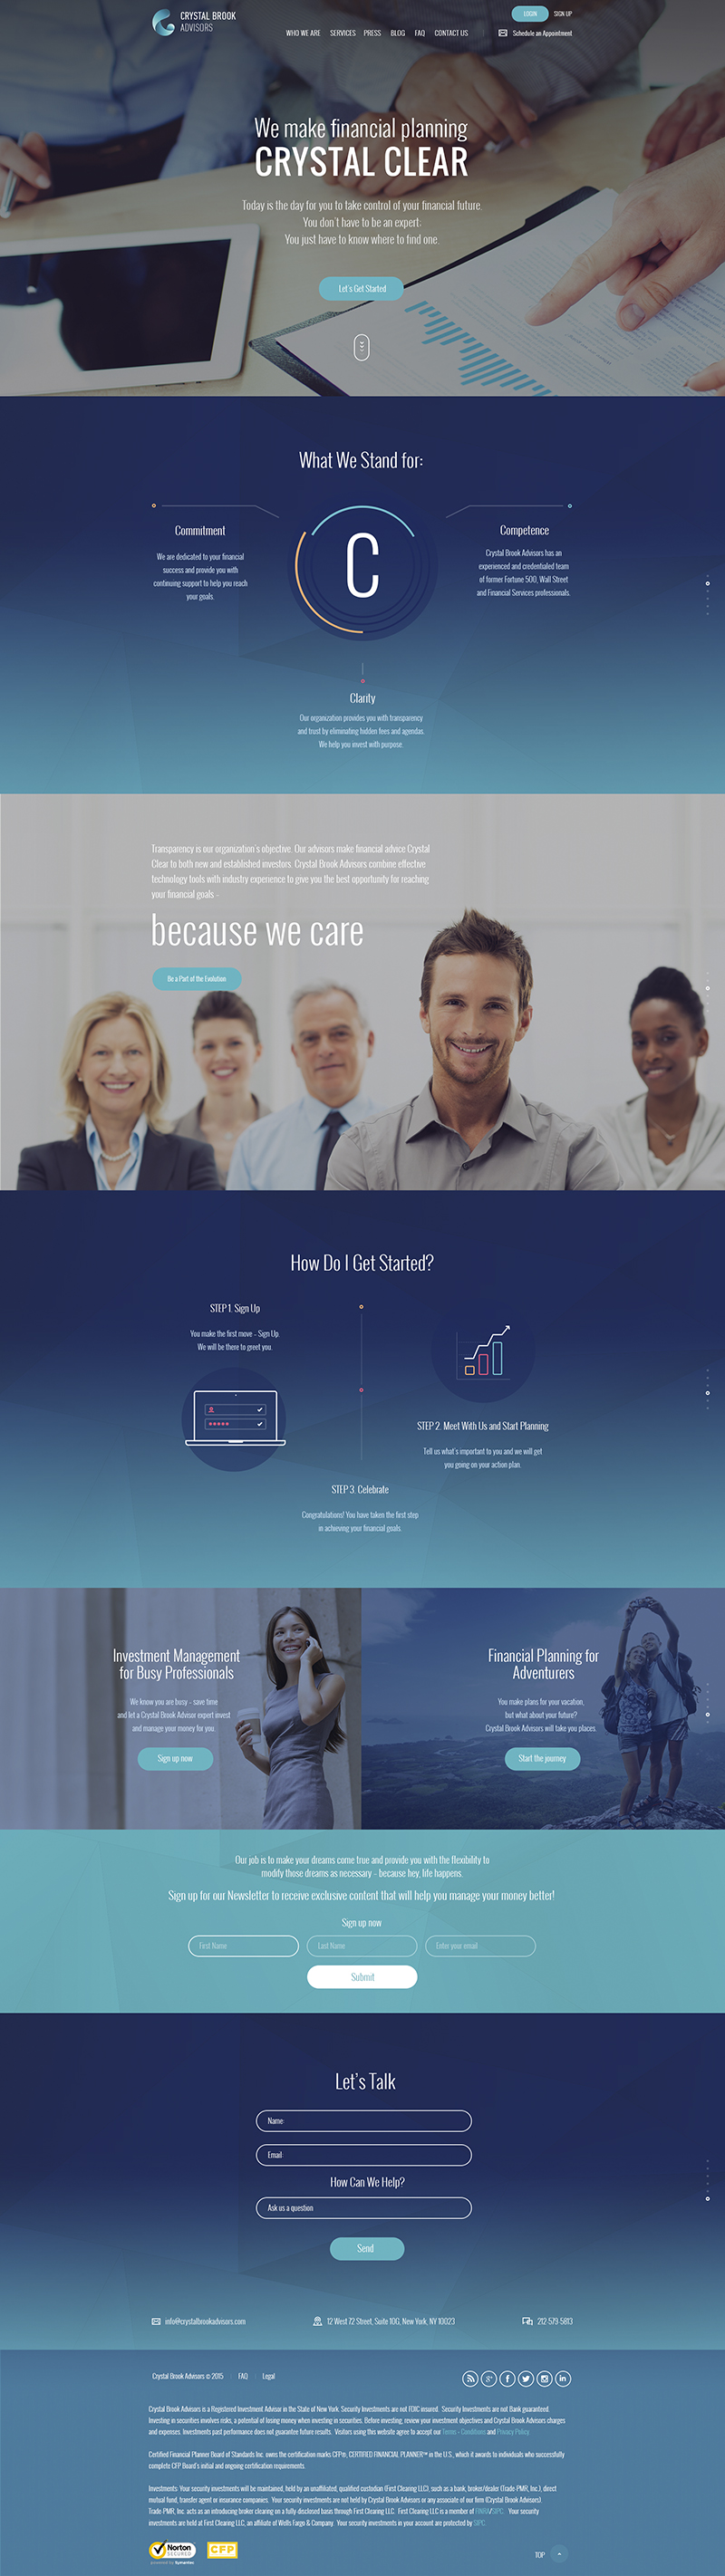 Crystal Brook Advisors Web Design